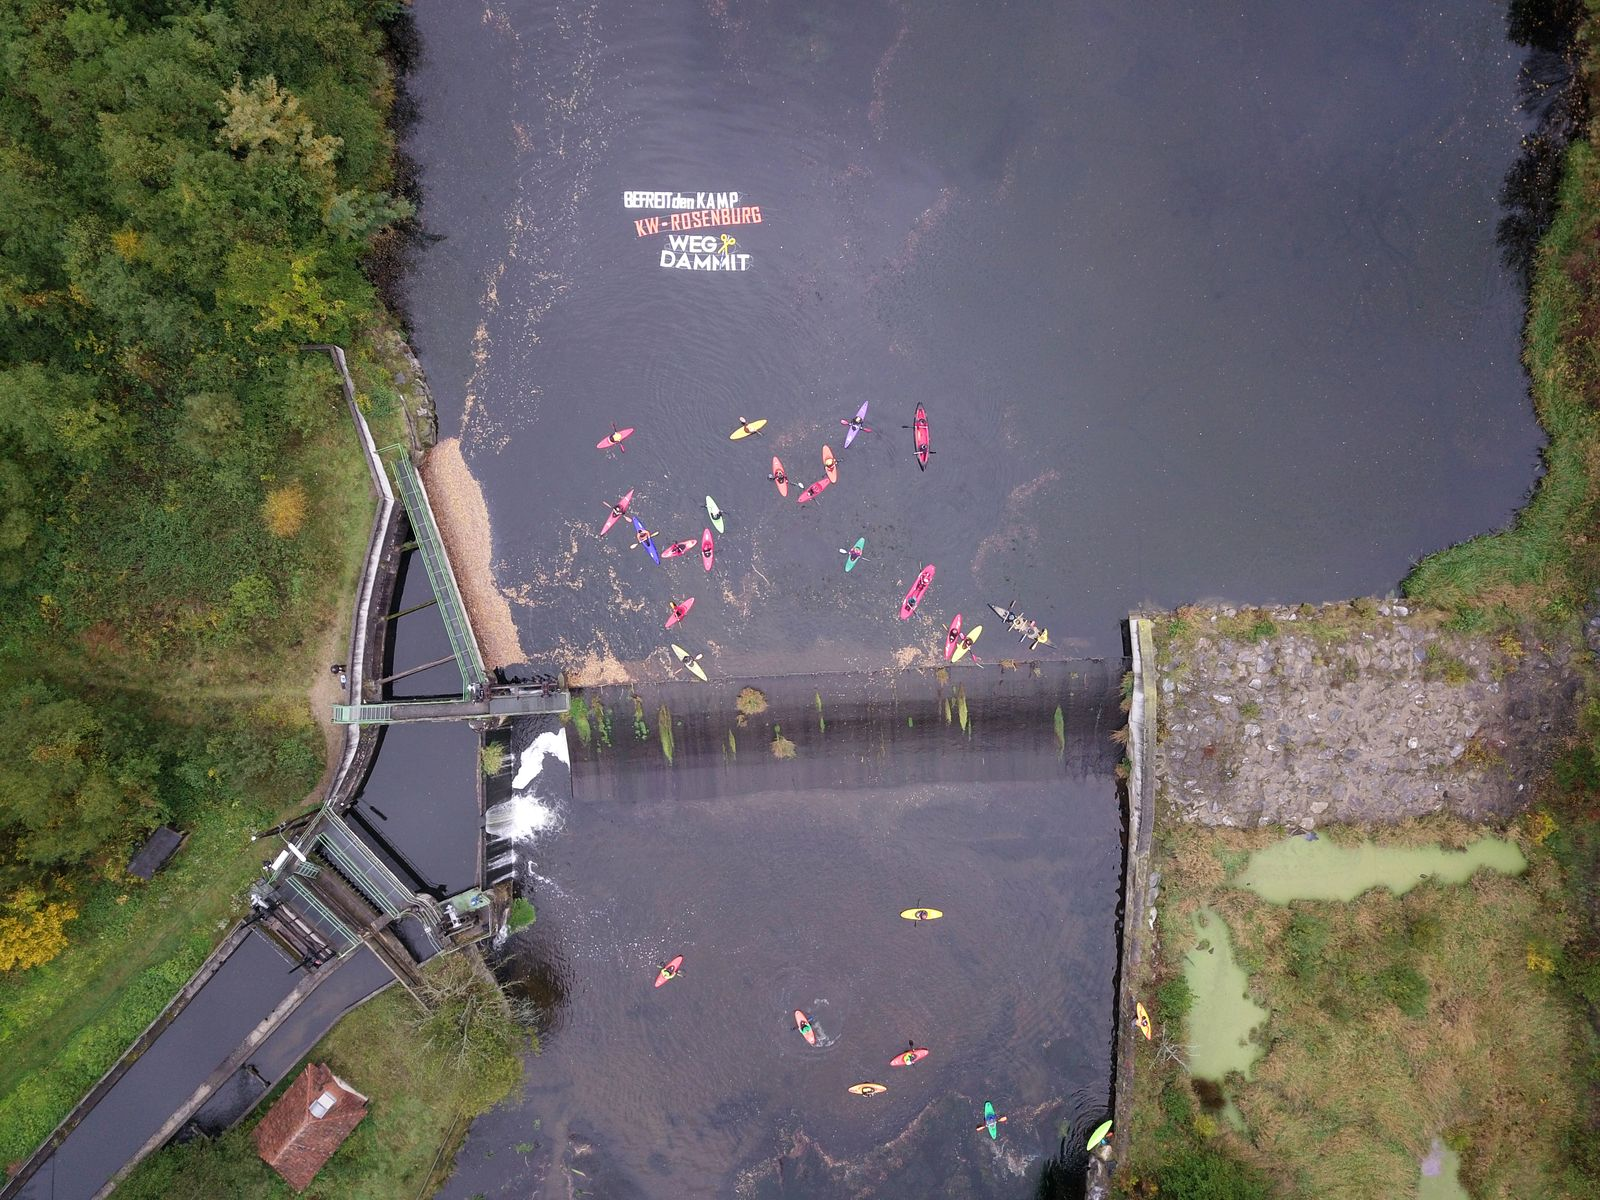 The energy Austrian energy corporation EVN Group plans to heighten the dam wall drastically. We demand its removal. © Riverwatch